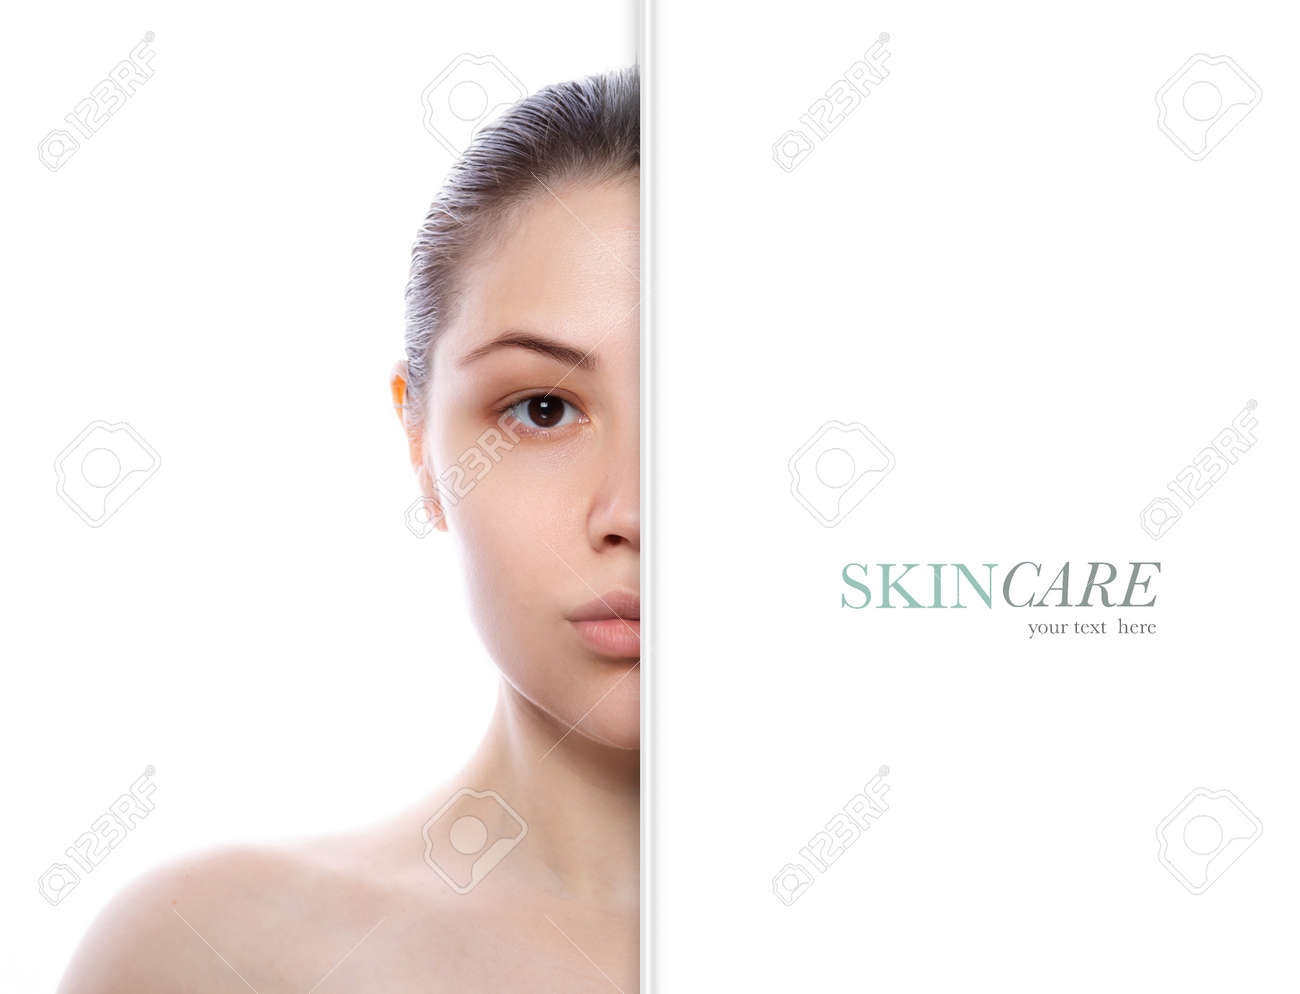 Beautiful model girl with perfect fresh clean skin. Half face portrait. - 148871327